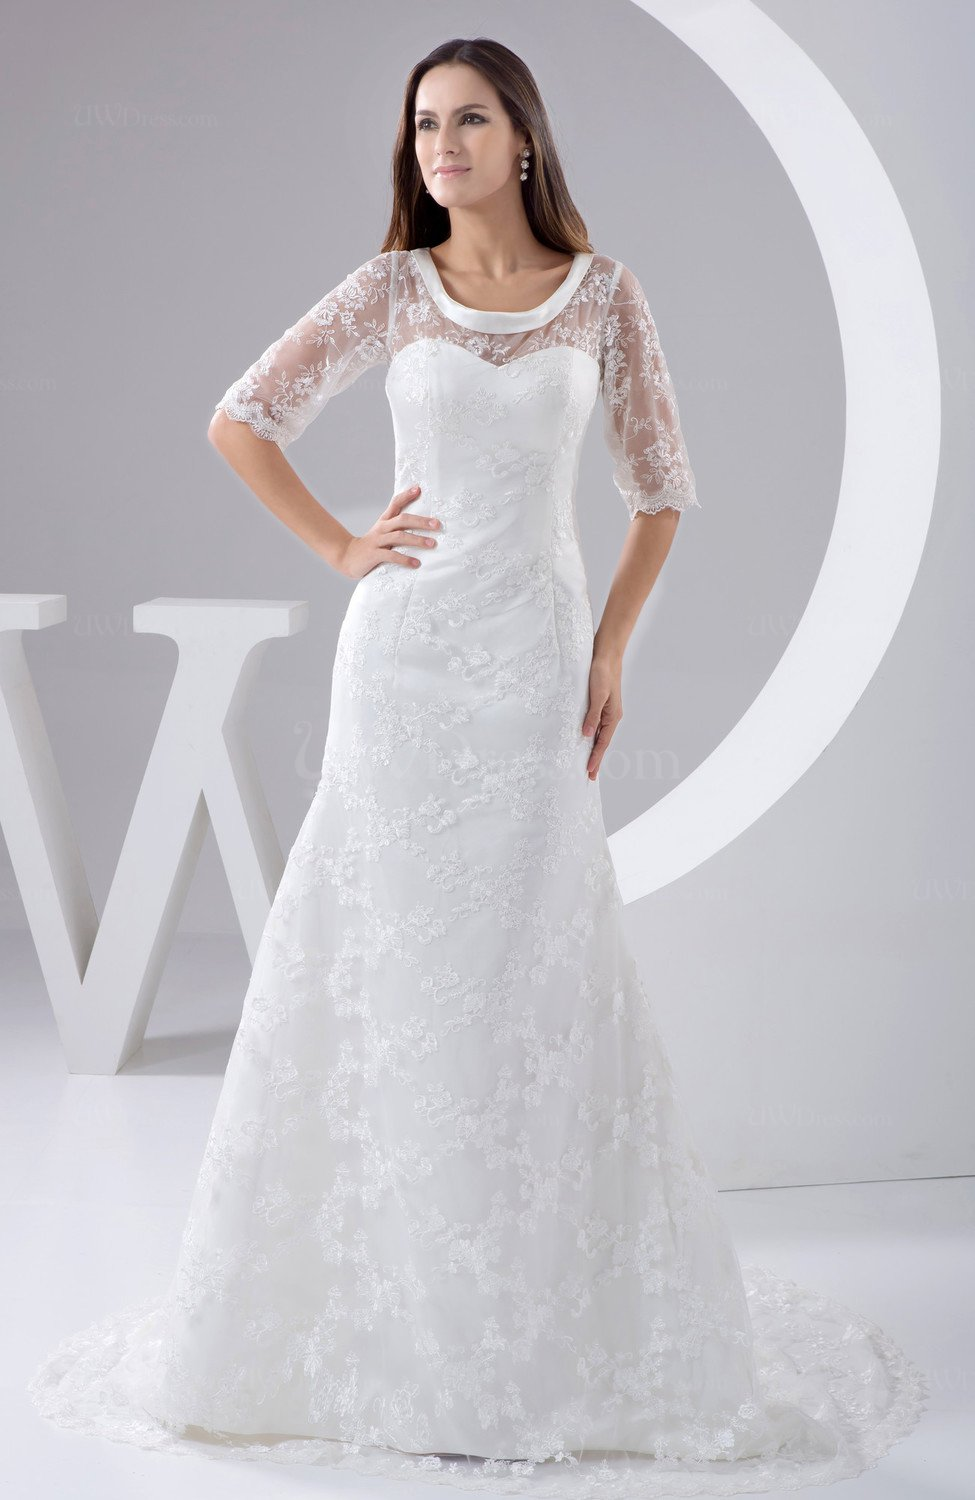 with Sleeves Bridal Gowns Lace Mature Full Figure Fall Spring ...